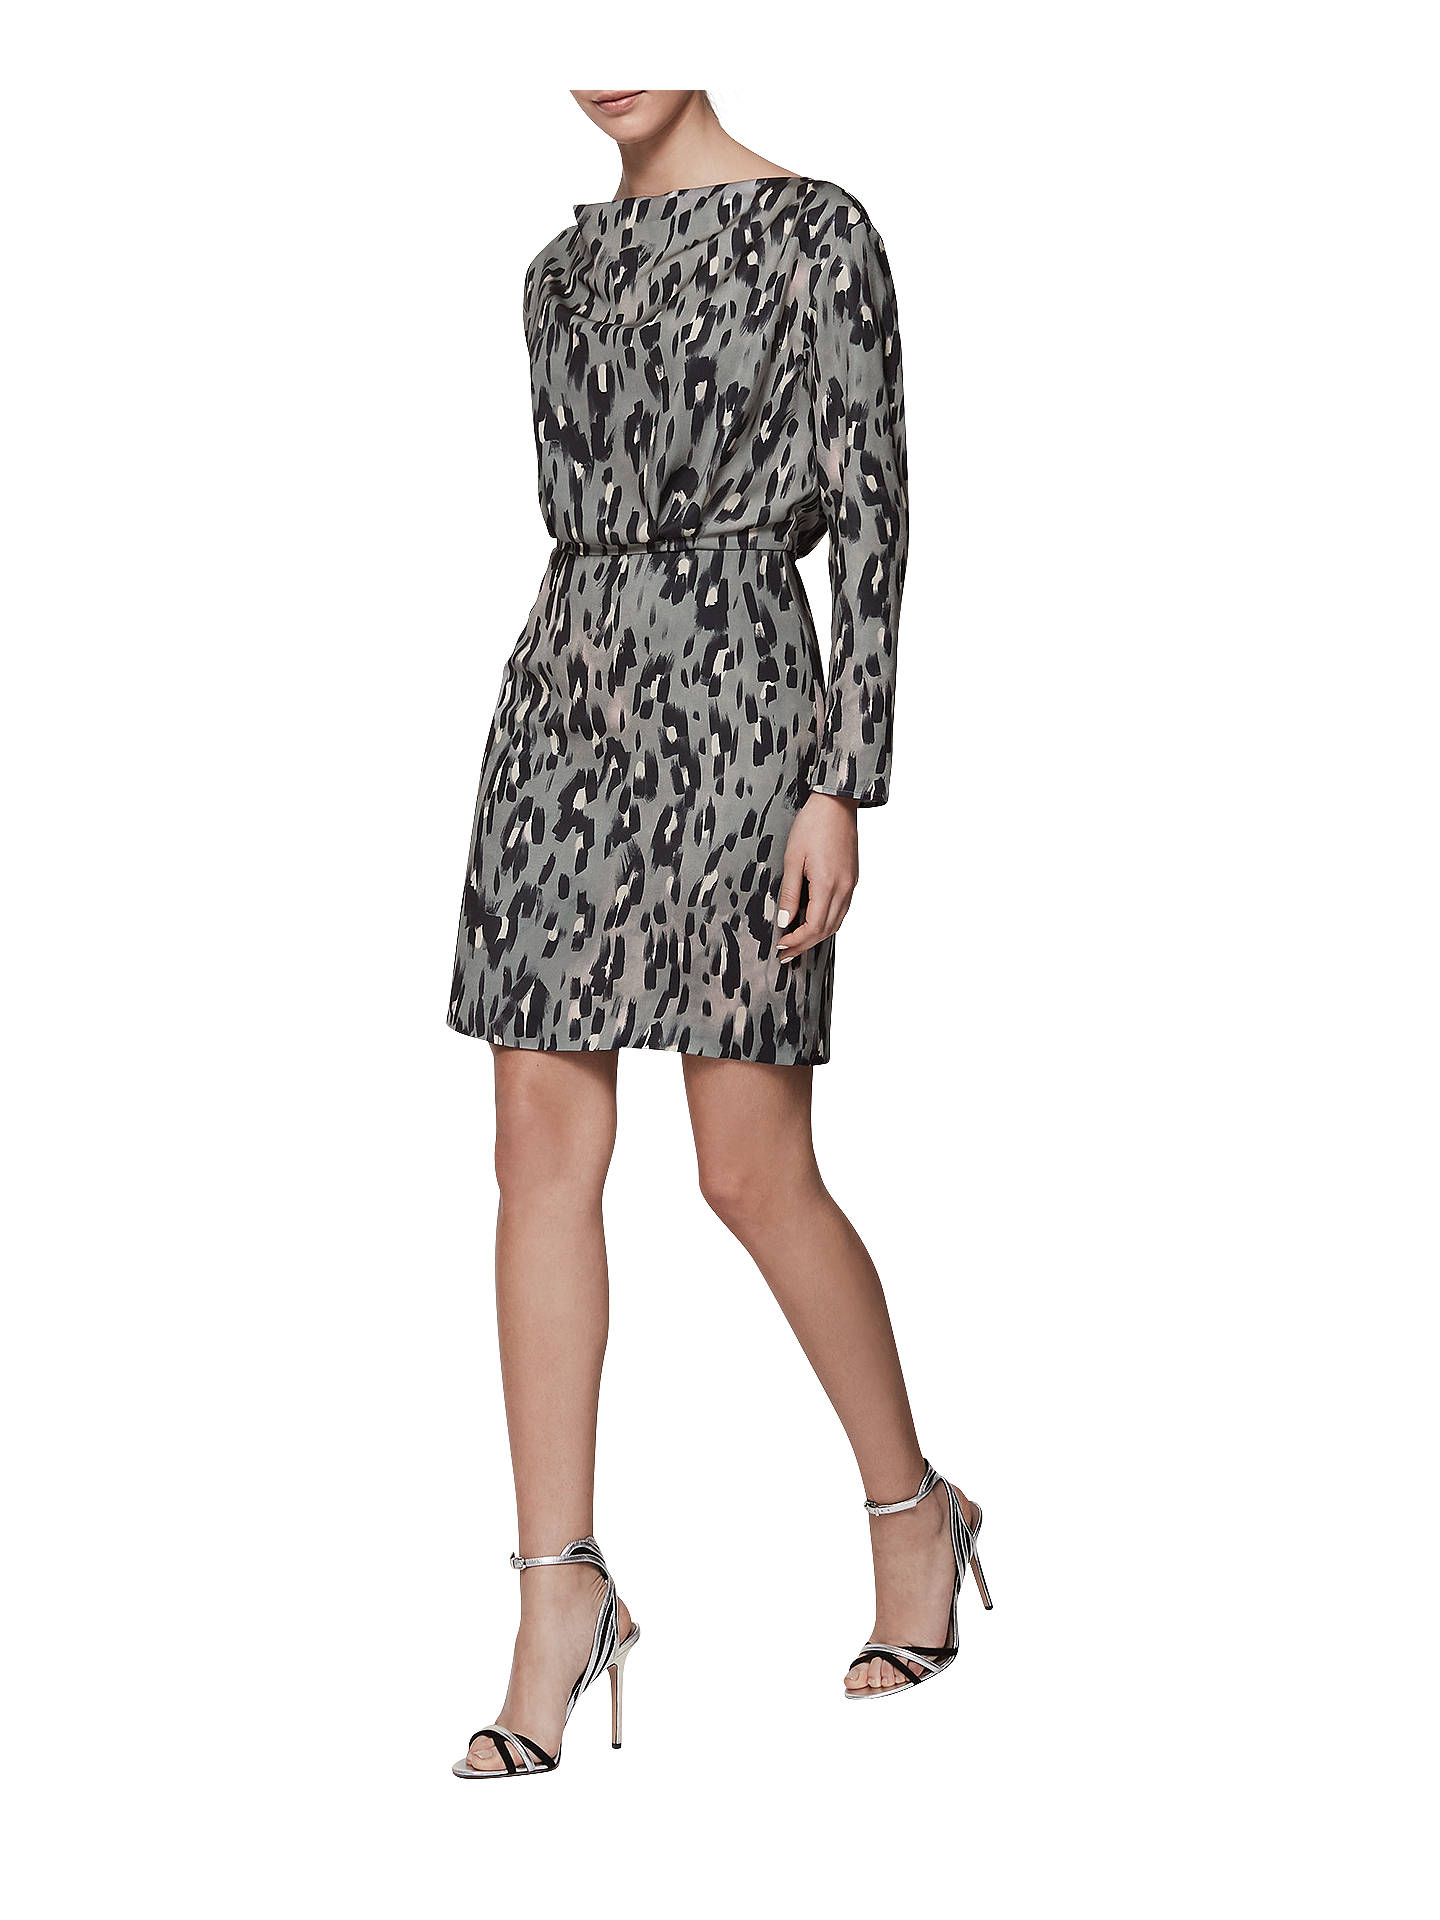 70e0acffe55b ... Buy Reiss Lotta Print Long Sleeve Dress, Multi, 6 Online at  johnlewis.com ...